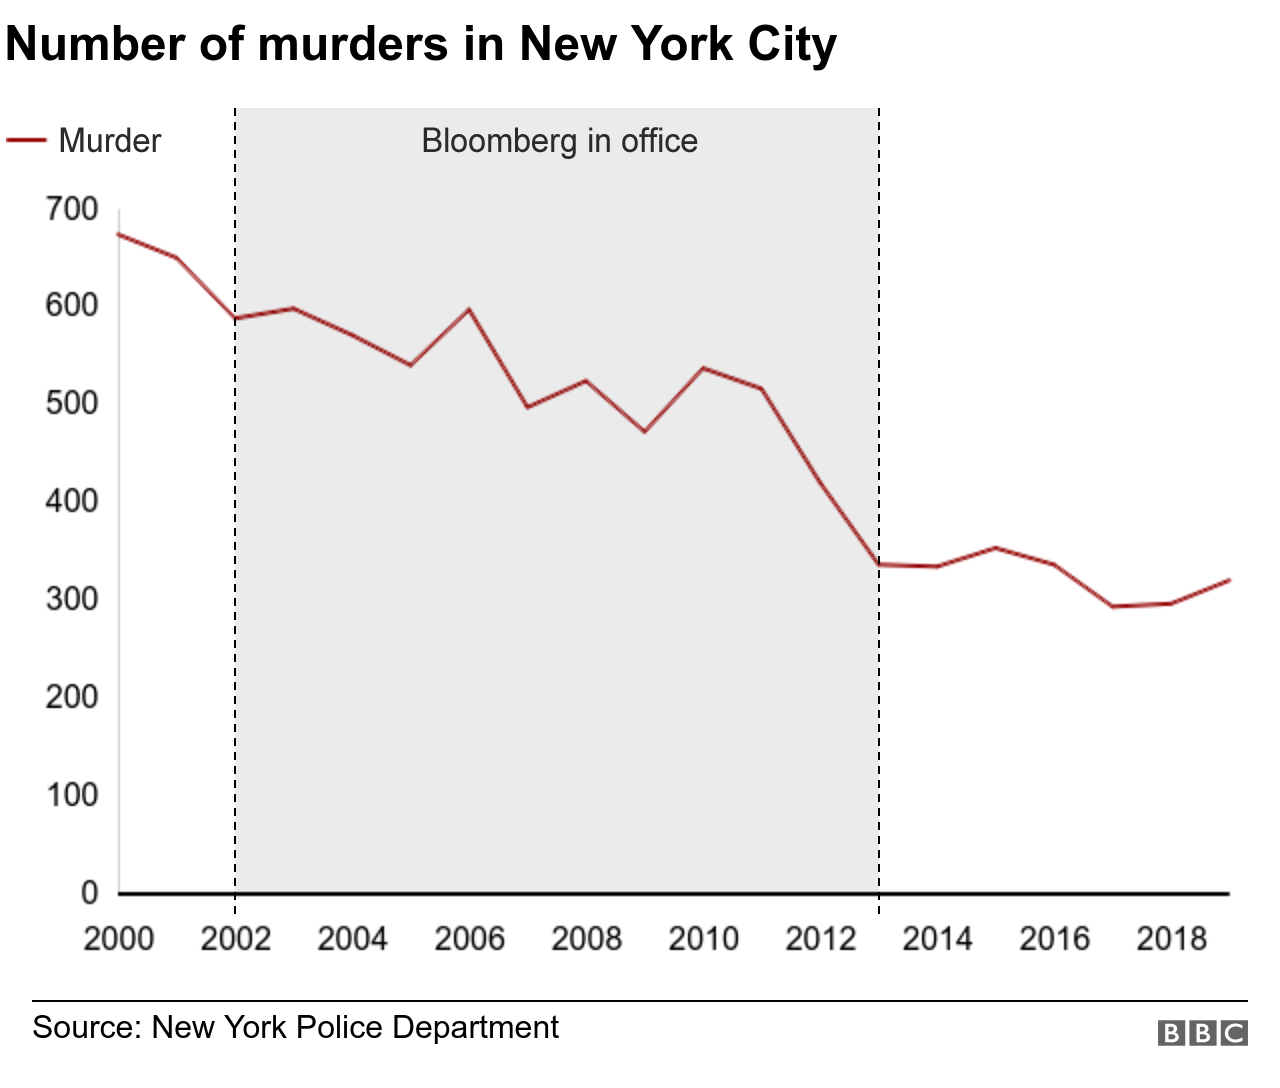 Number of murders in New York City